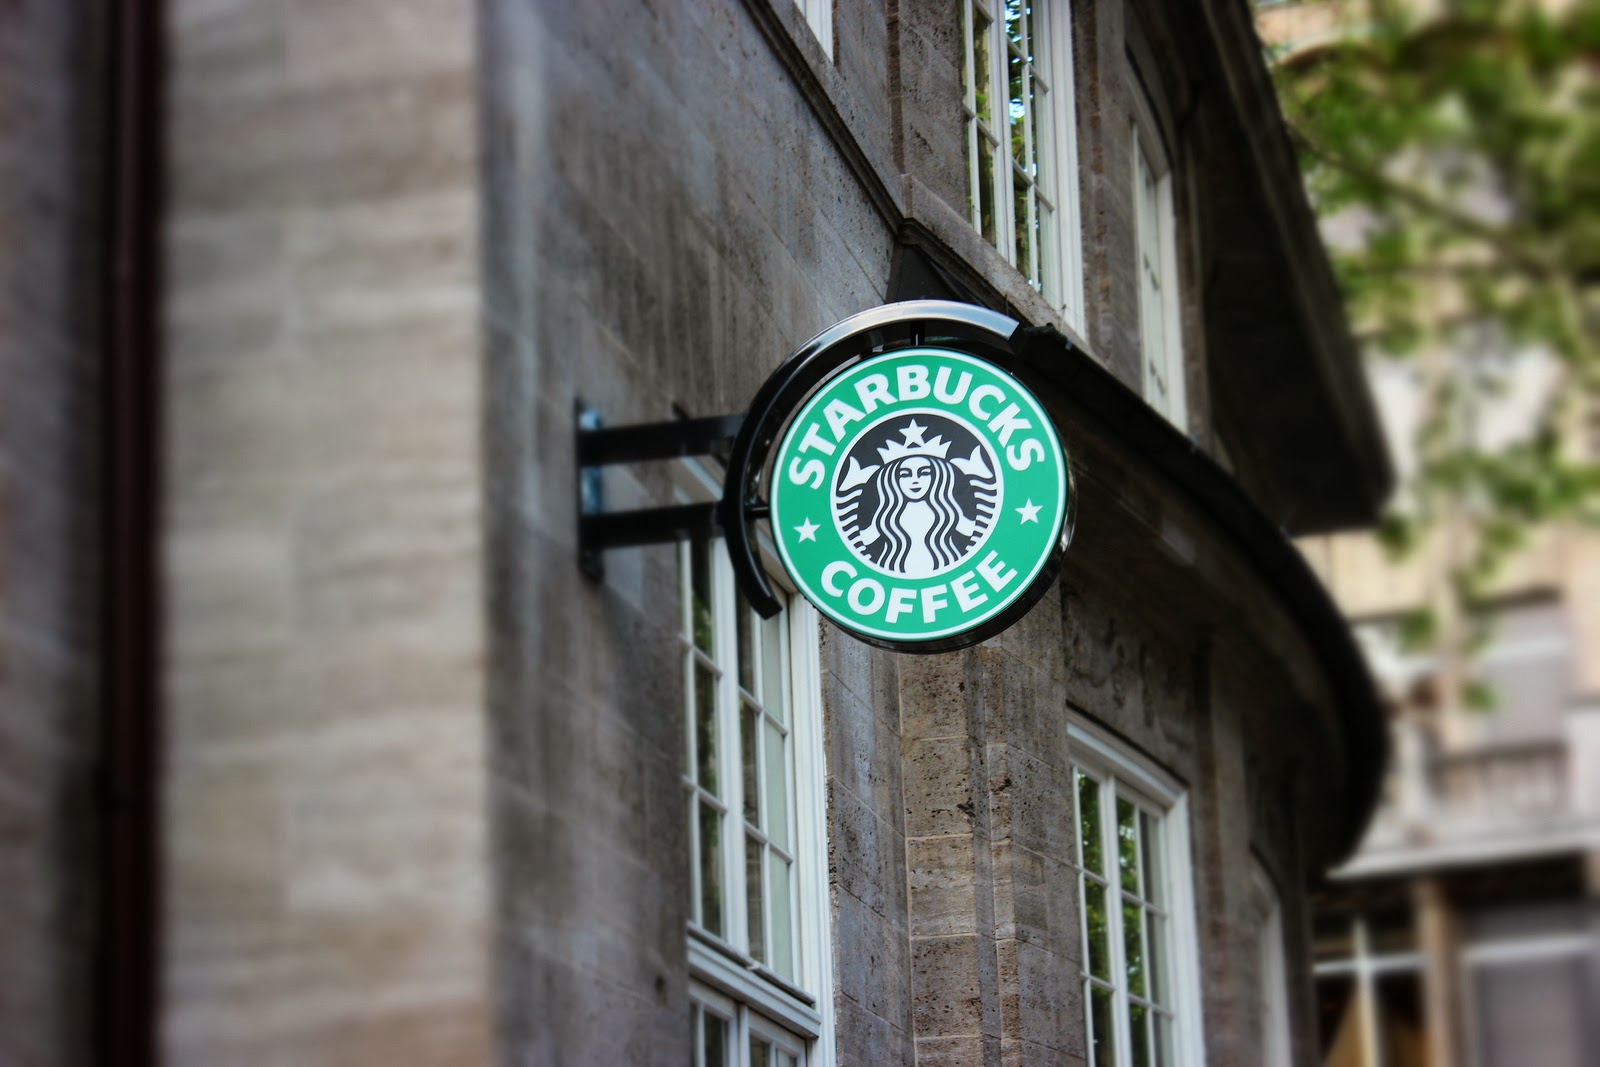 starbucks information for a strategic plan The marketing mix identifies the main components of the firm's marketing plan starbucks starbucks uses a premium pricing strategy panmore institute.